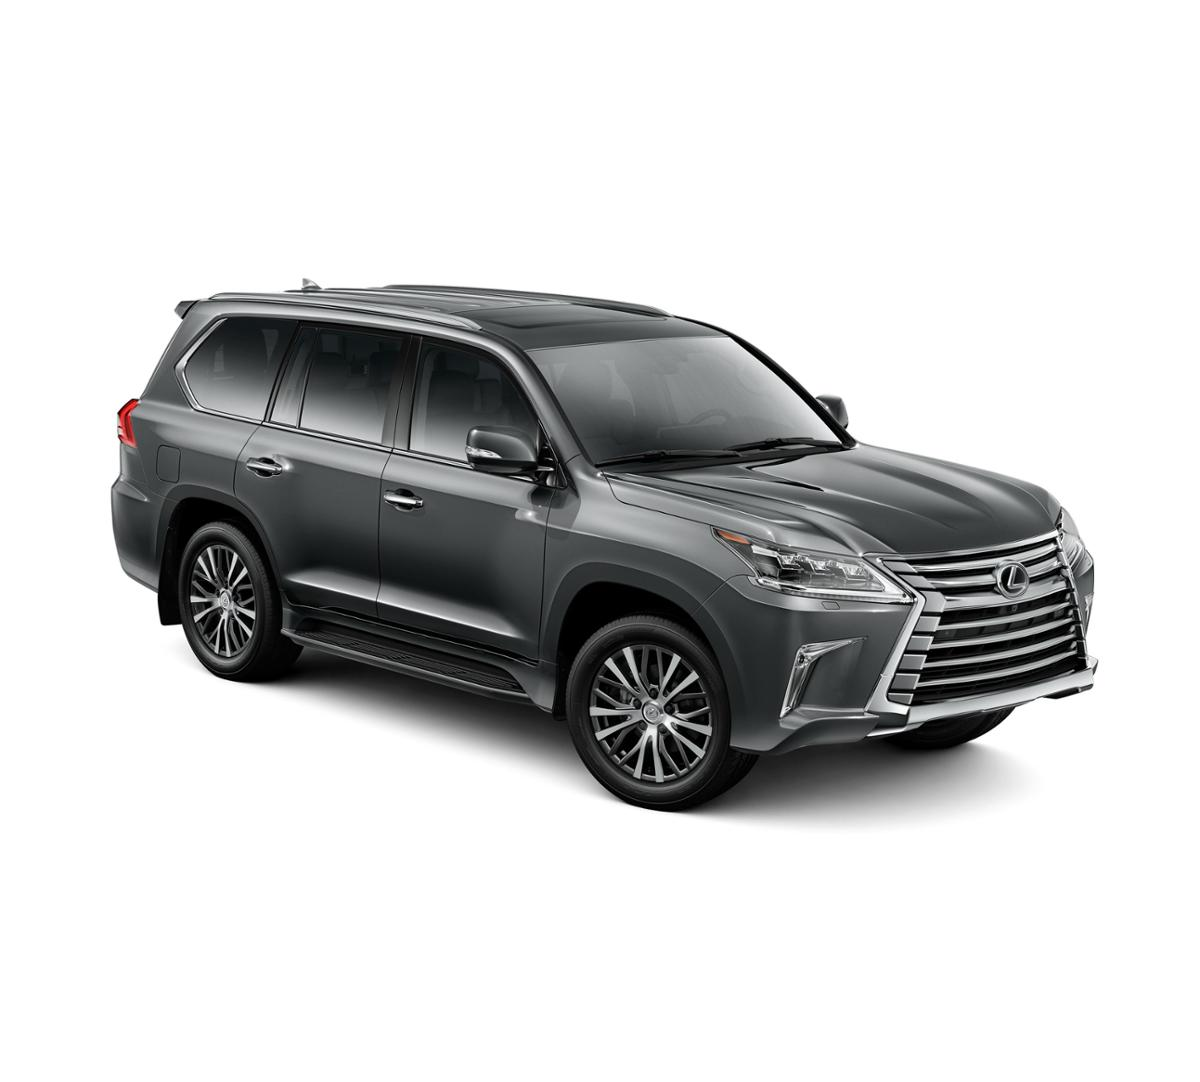 2017 Lexus LX 570 Vehicle Photo in Las Vegas, NV 89146